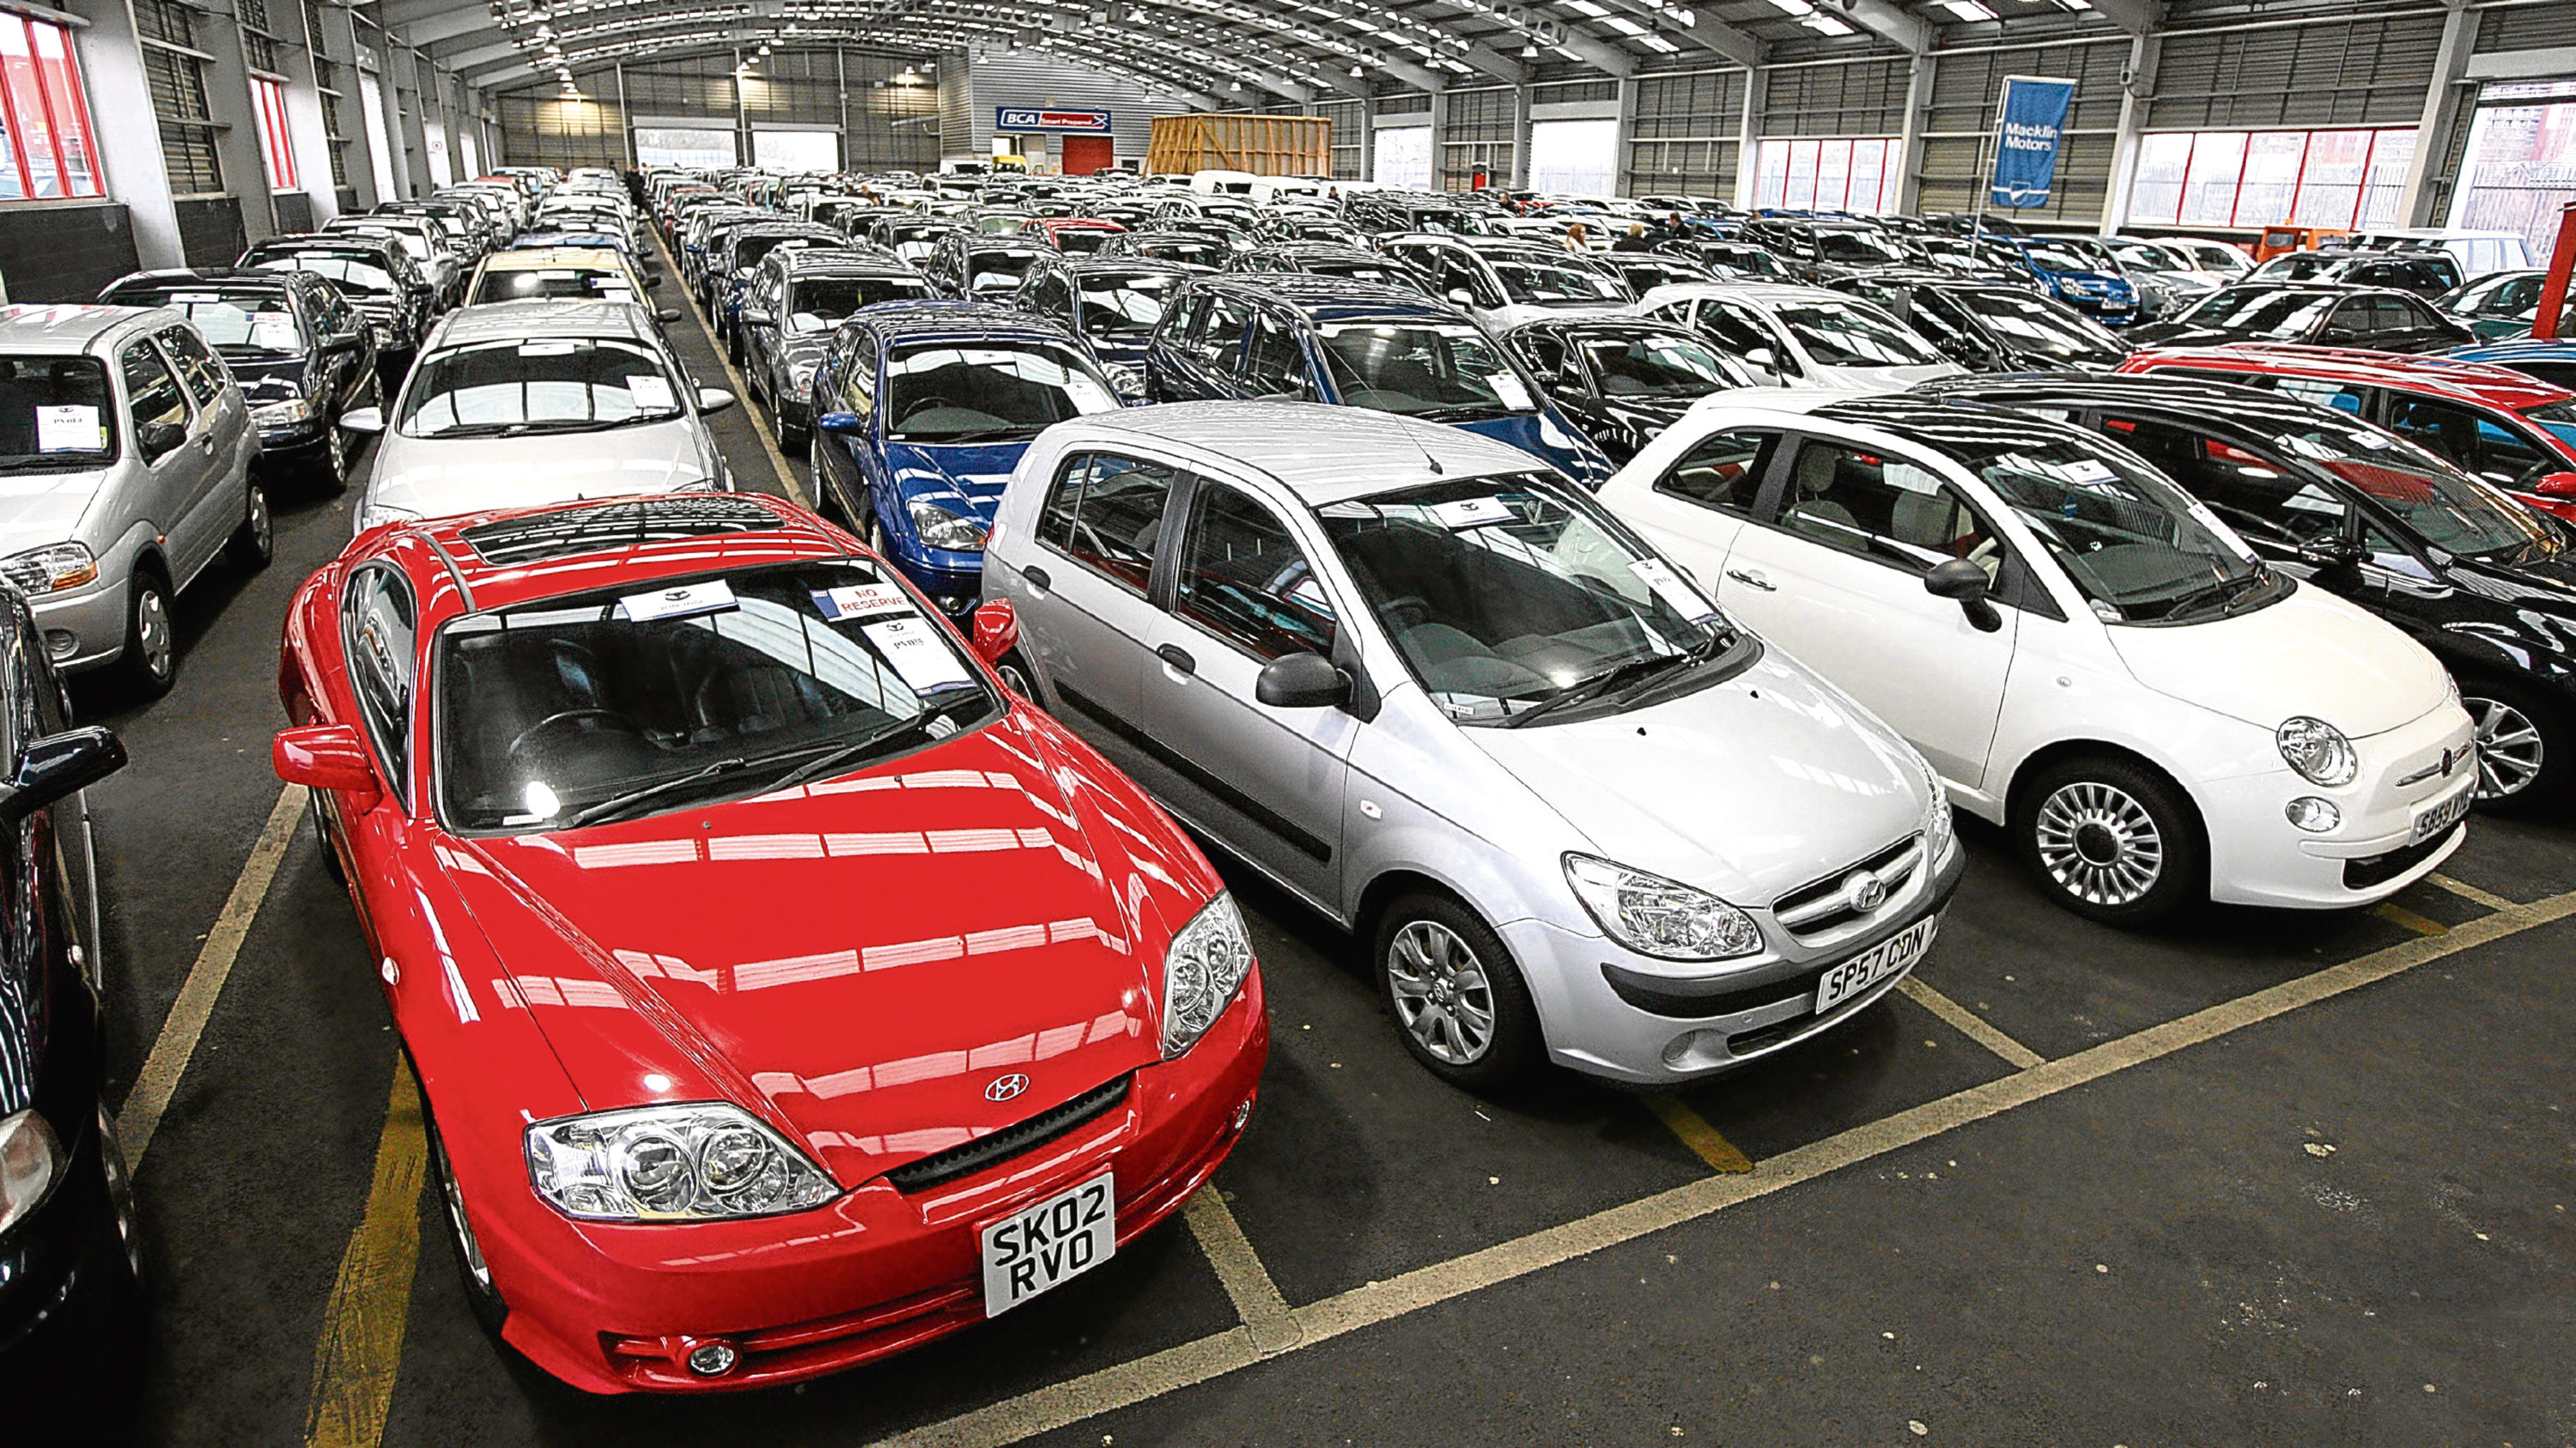 Undated Handout Photo of cars ready for auction. See PA Feature MOTORING Column. Picture credit should read: PA Photo/BCA. WARNING: This picture must only be used to accompany PA Feature MOTORING Column.